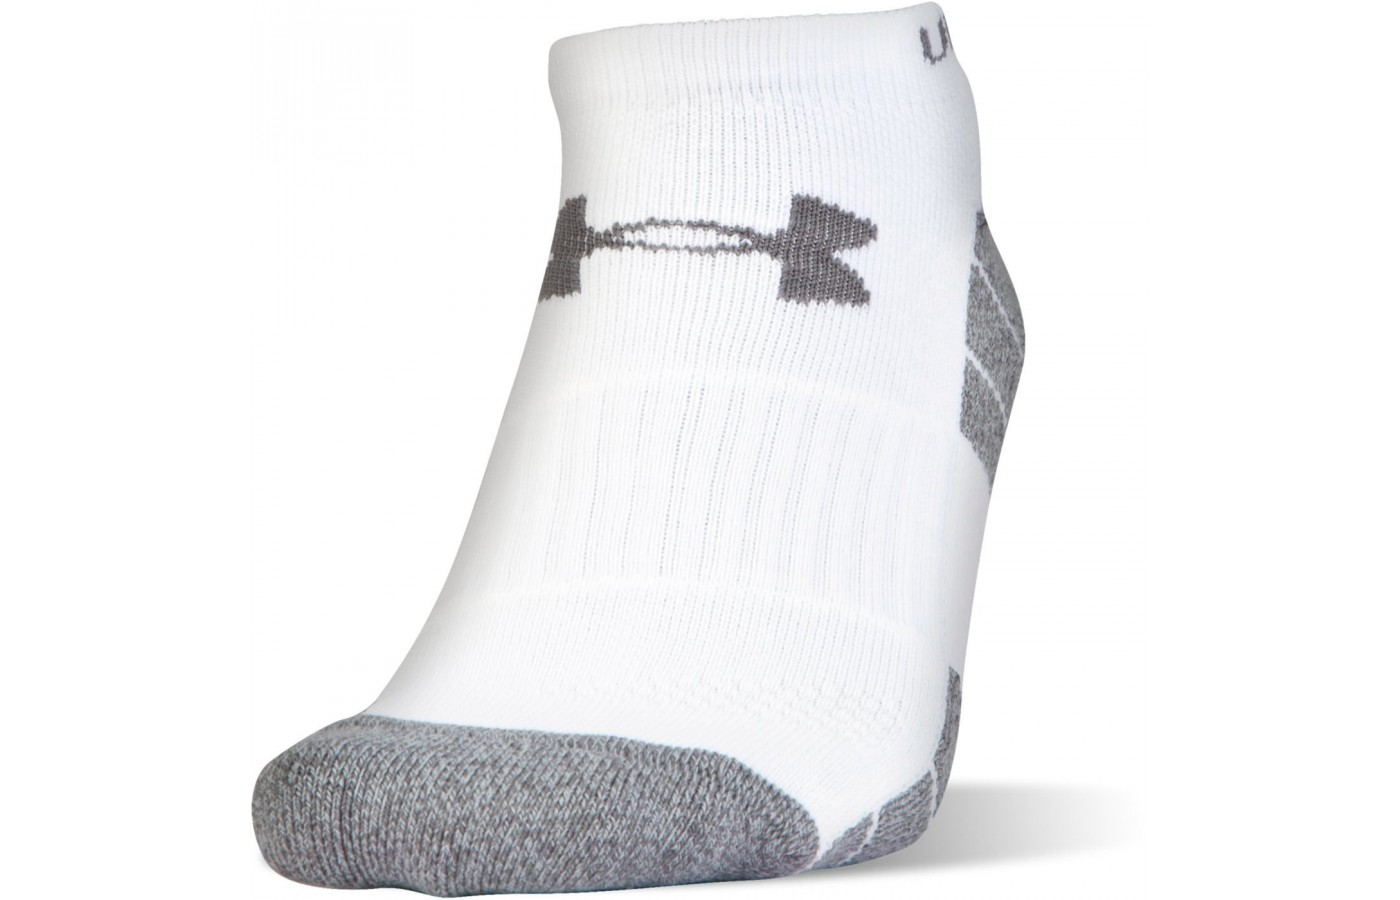 Under Armour Elevated Socks Front View